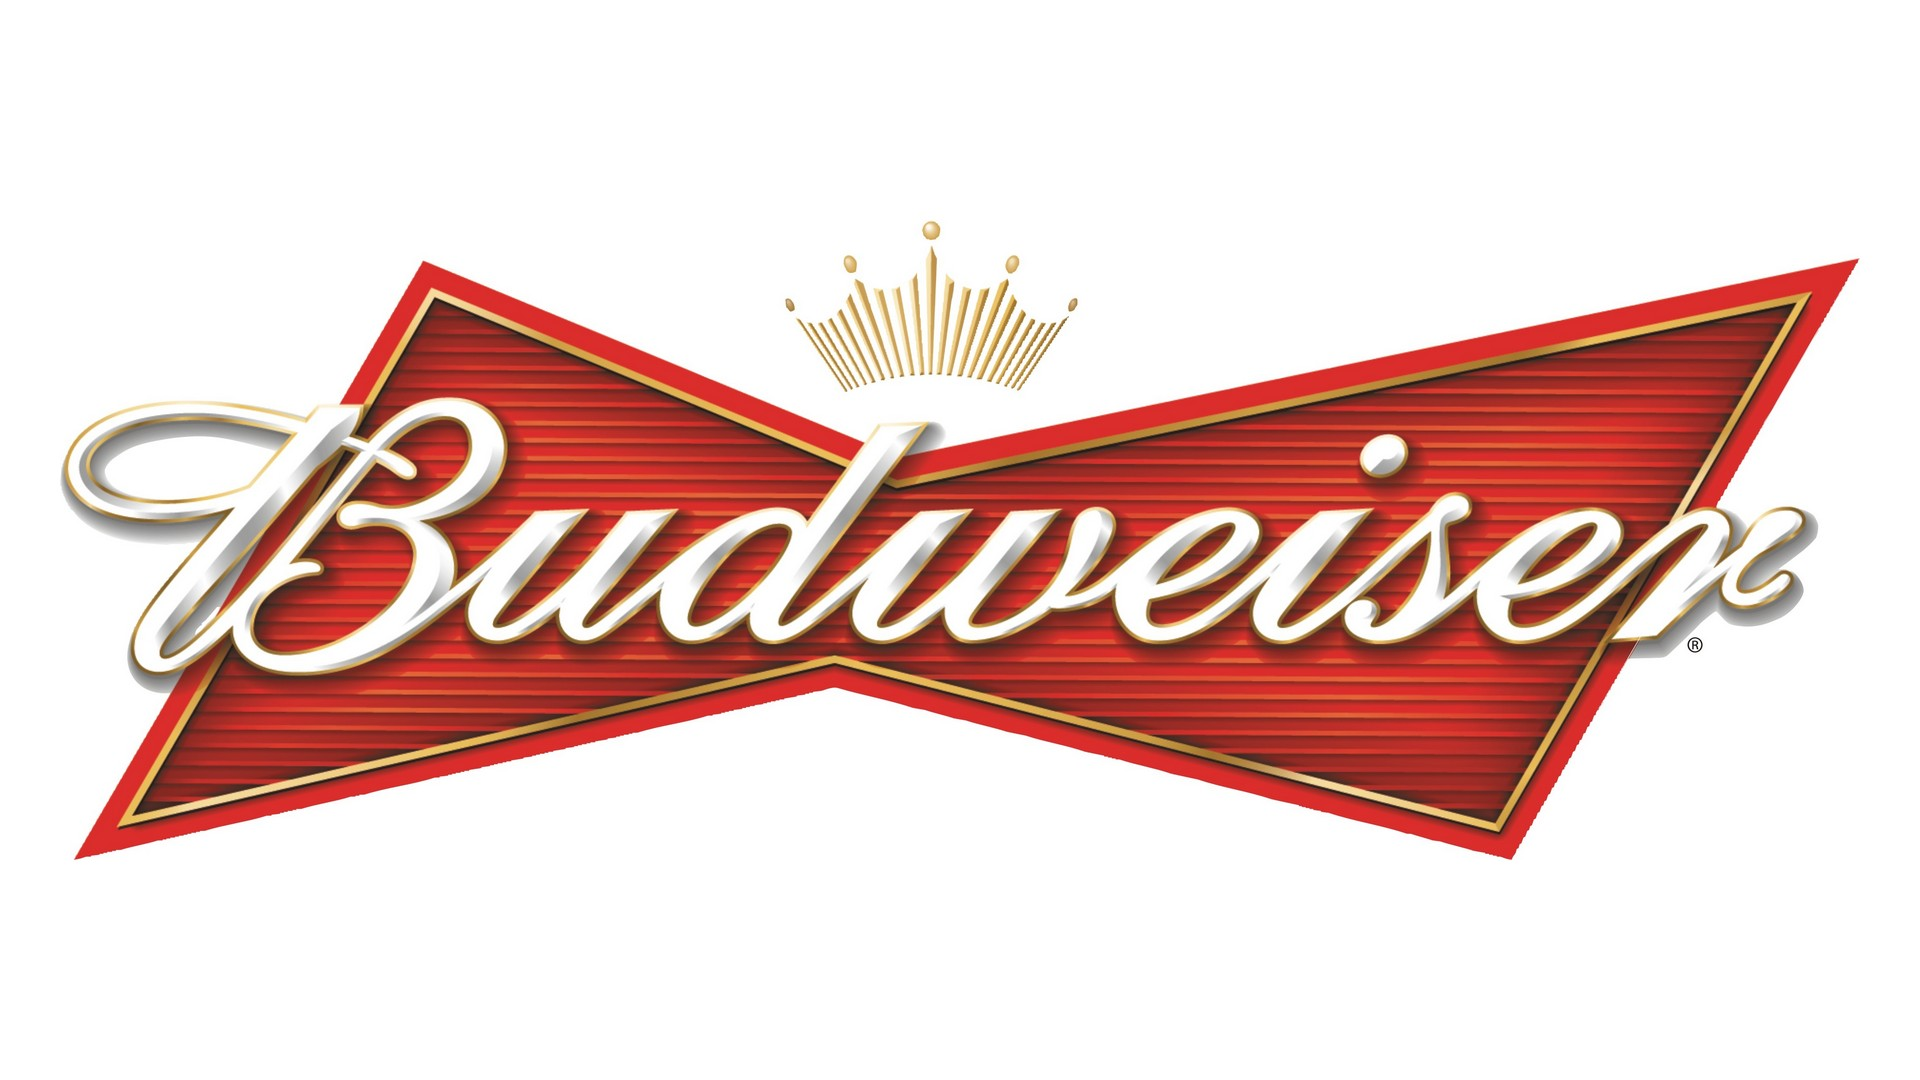 Did-you-know-the-budweiser-sign-is-a-chair-conformation-orgoproblems-wallpaper-wpc5804126